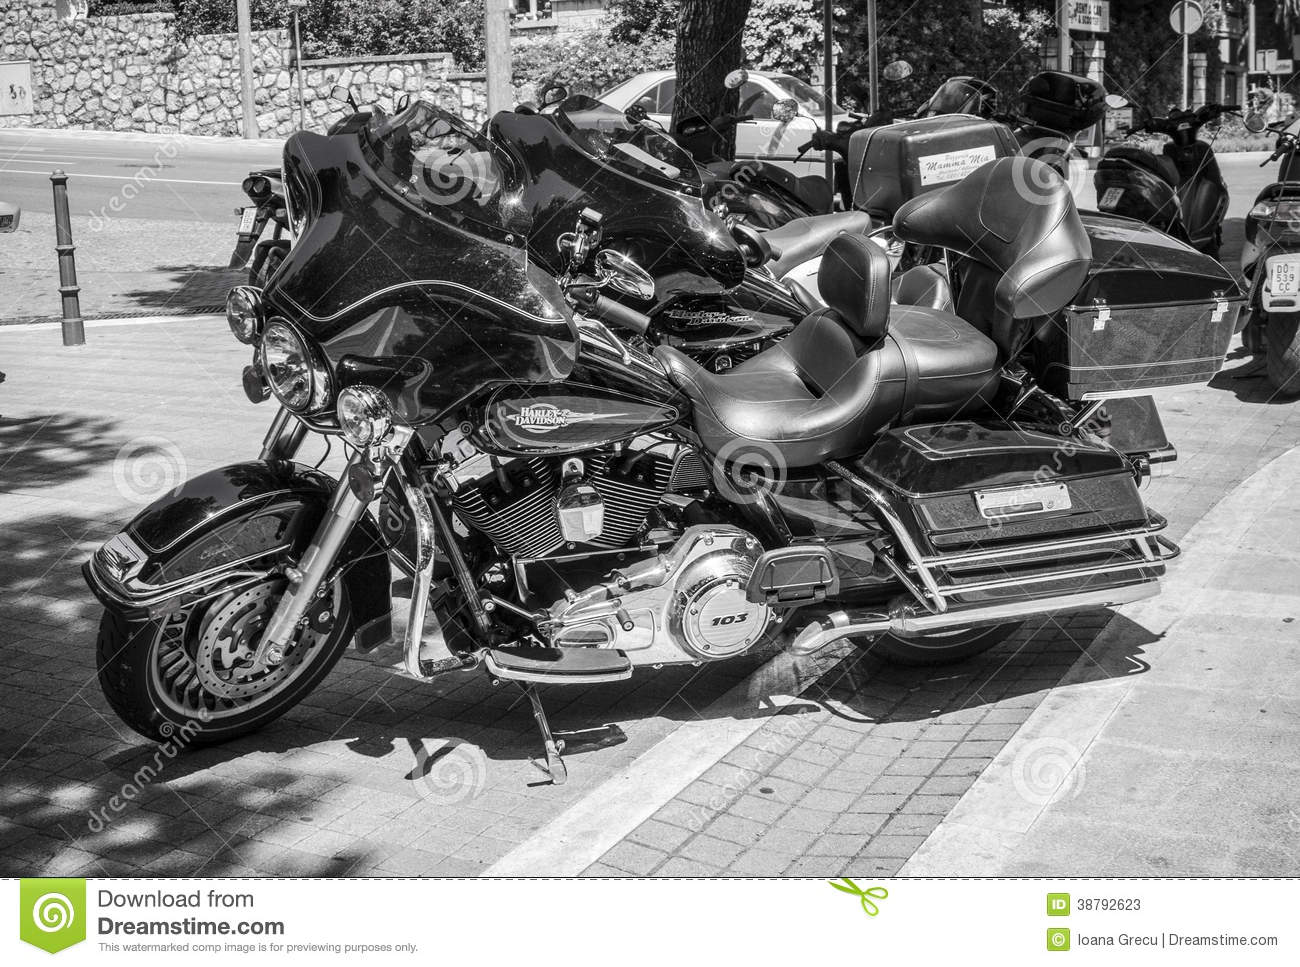 Harley Davidson Stock: Harley Davidson Motorcycles Editorial Stock Photo